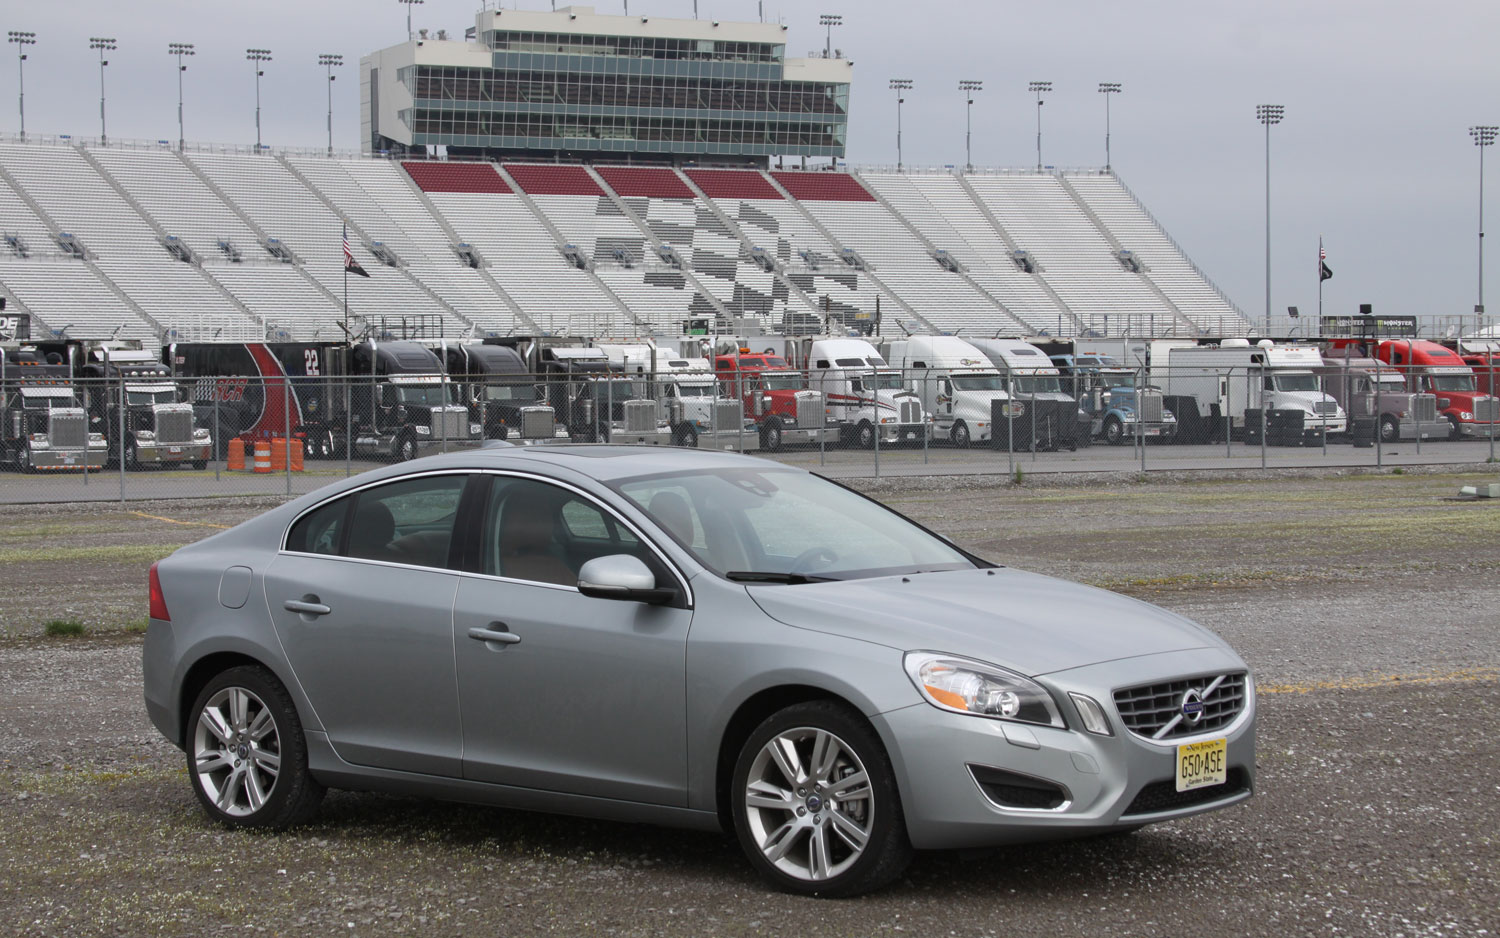 2012 Volvo S60 T6 Awd Front Right View Parked1